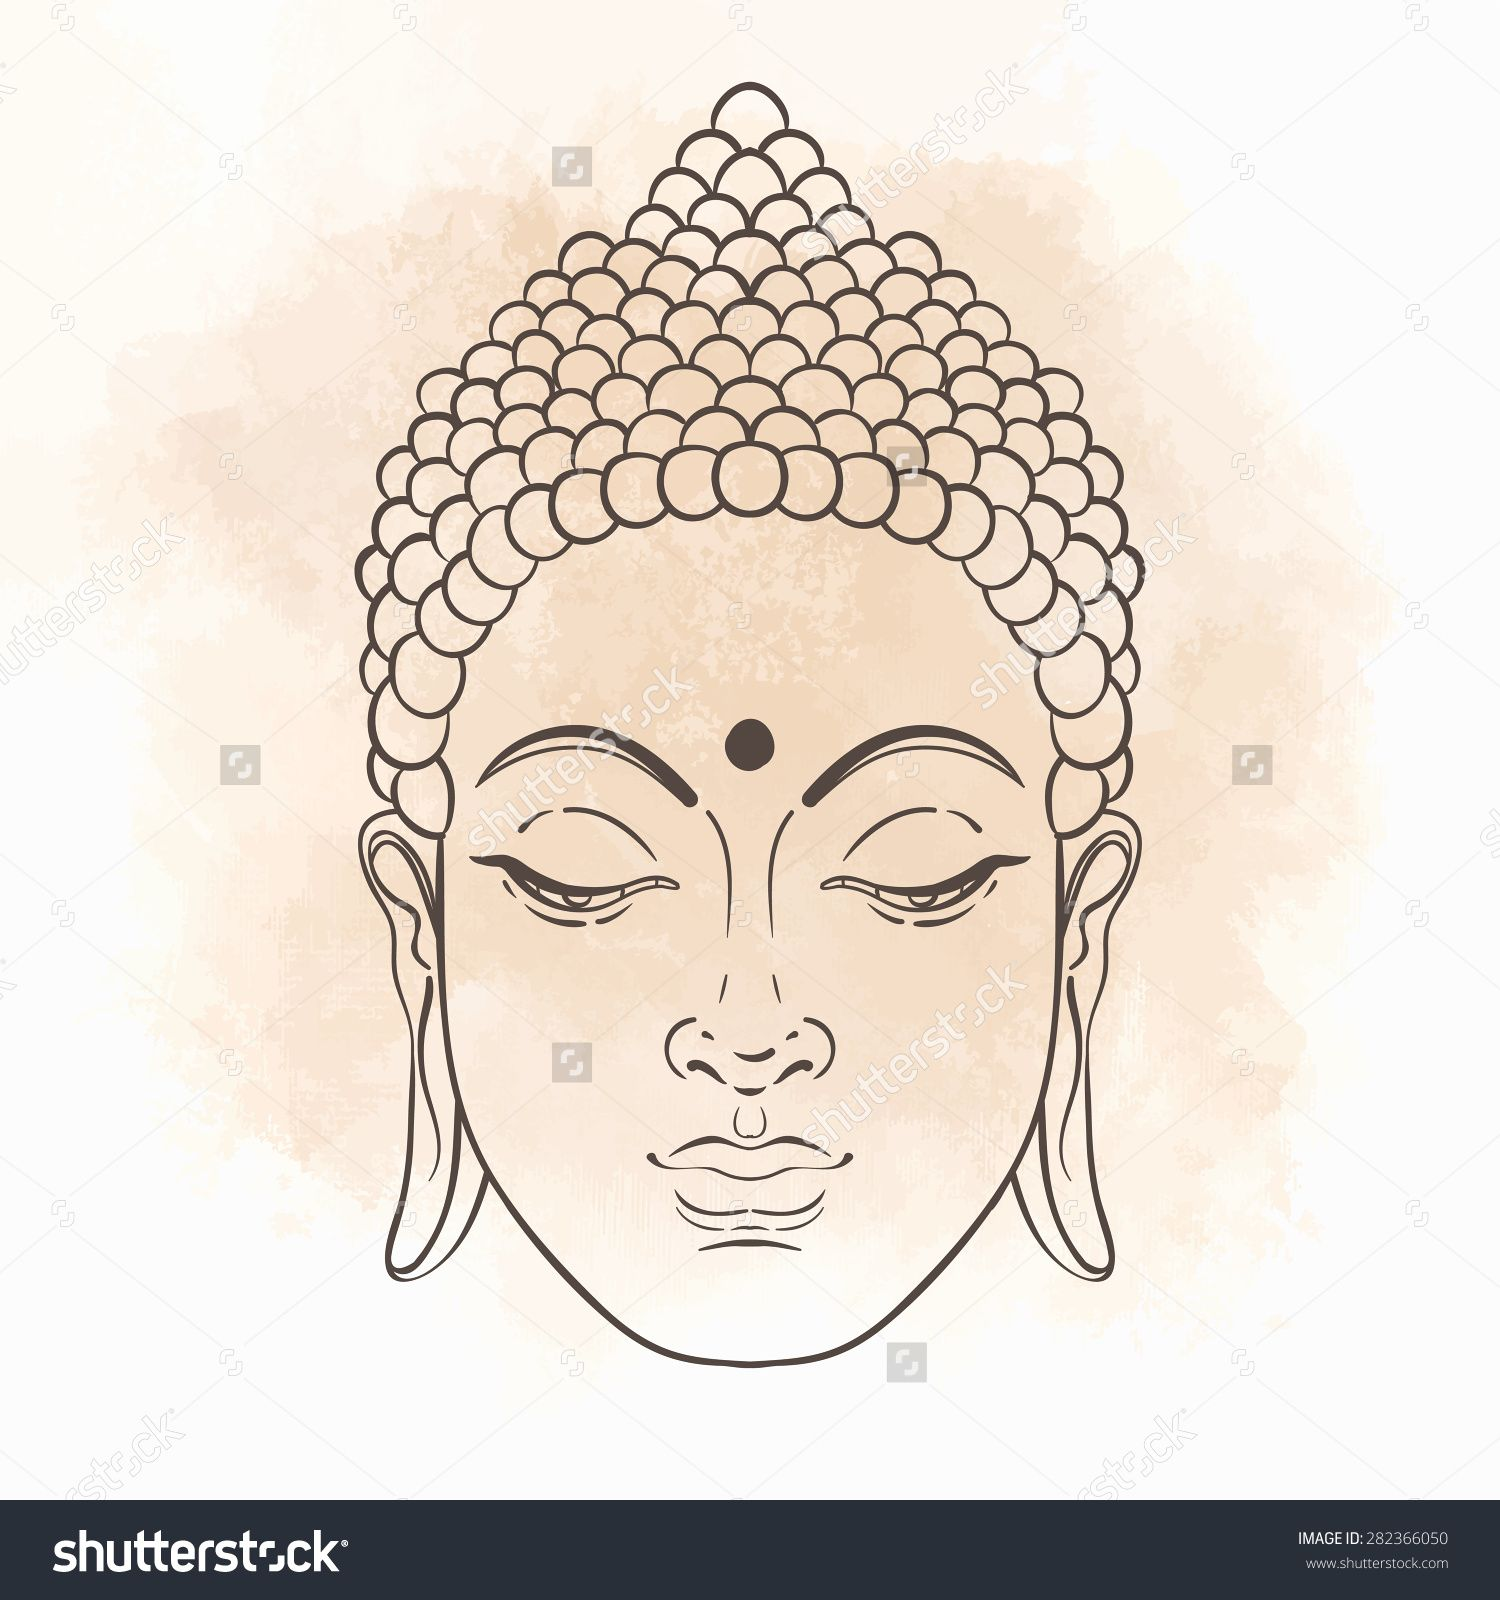 D Line Drawings Quotes : Stock vector head of buddha illustration isolated